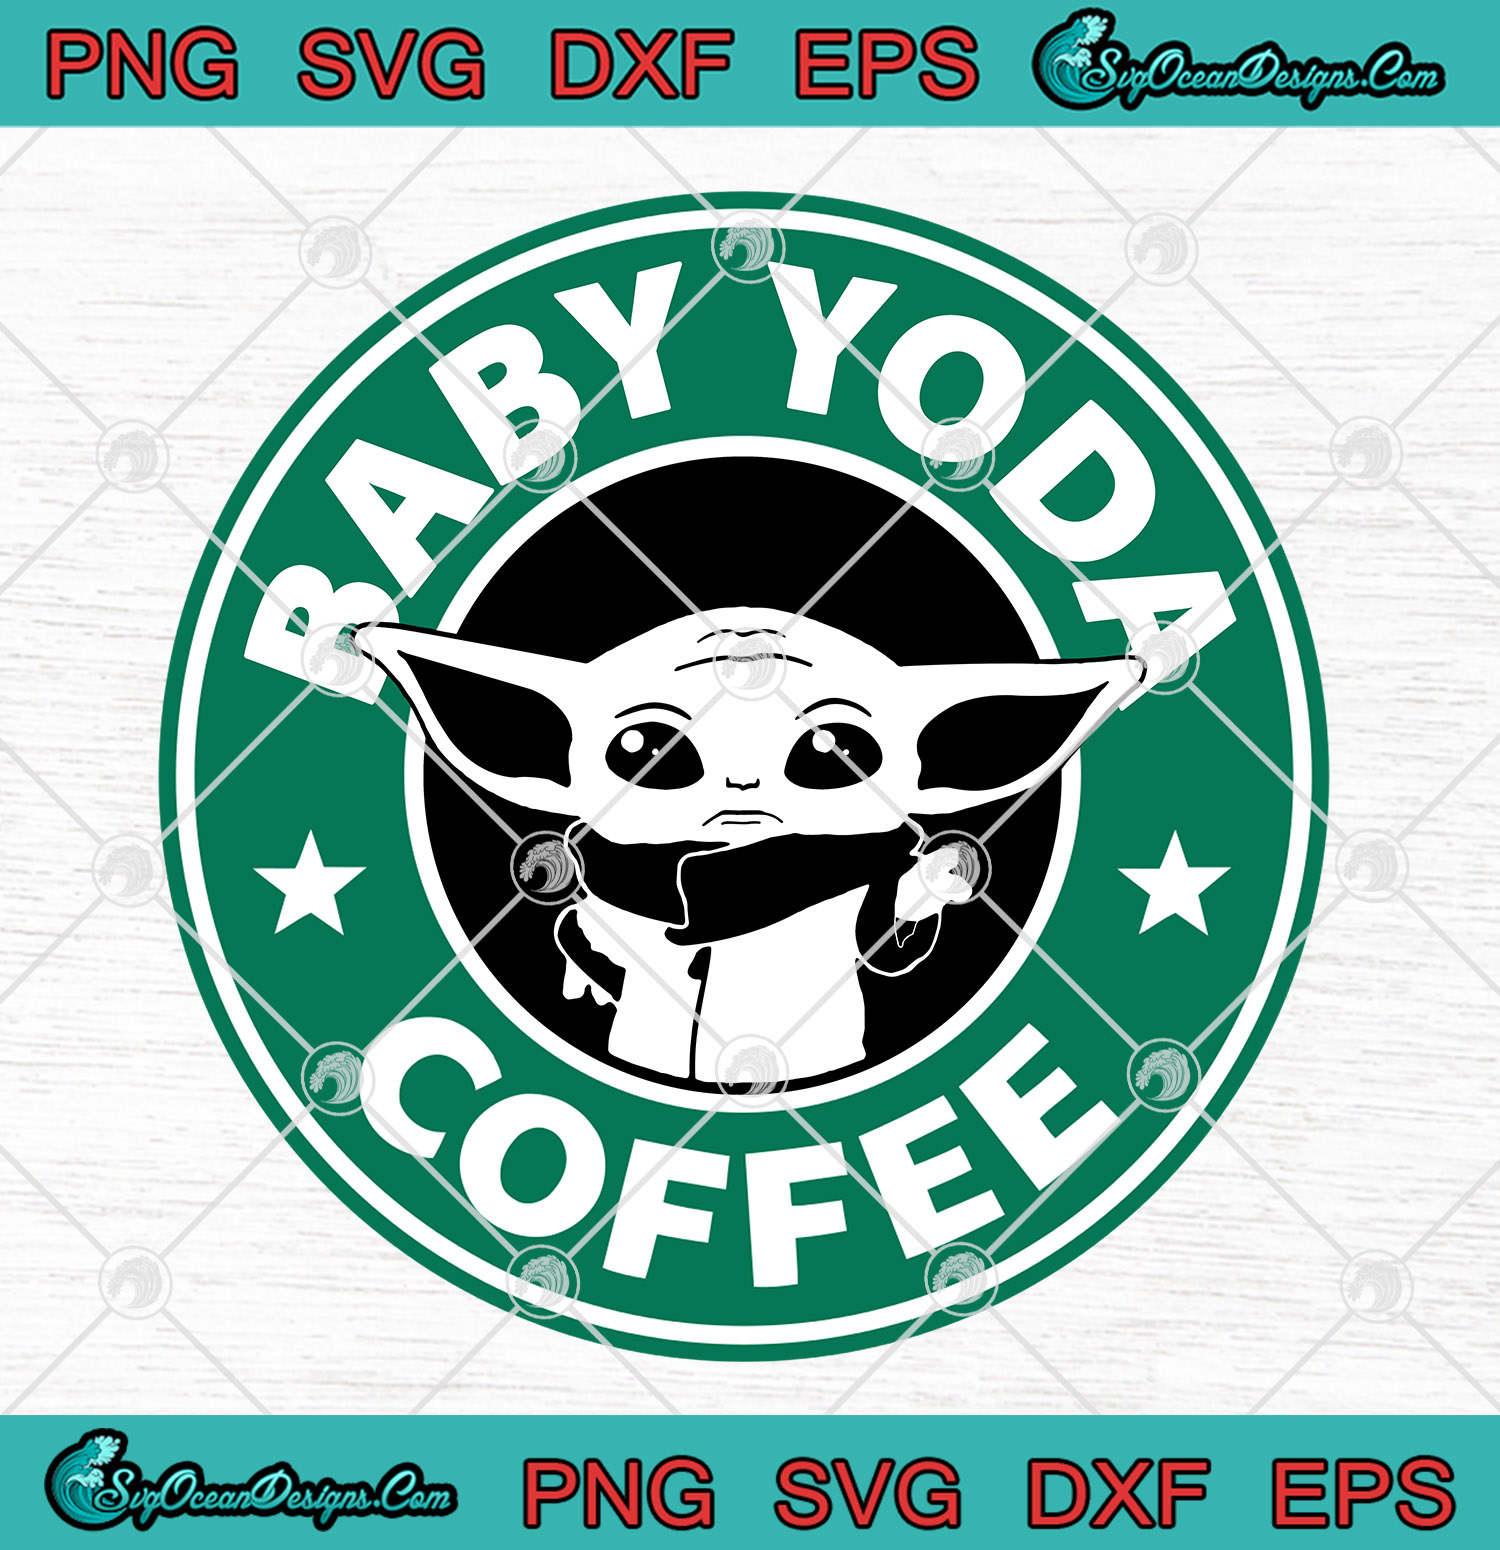 Baby Yoda Starbucks Coffee Logo Svg Png Star Wars The Mandalorian Baby Yoda Svg Png Eps Dxf Designs Digital Download